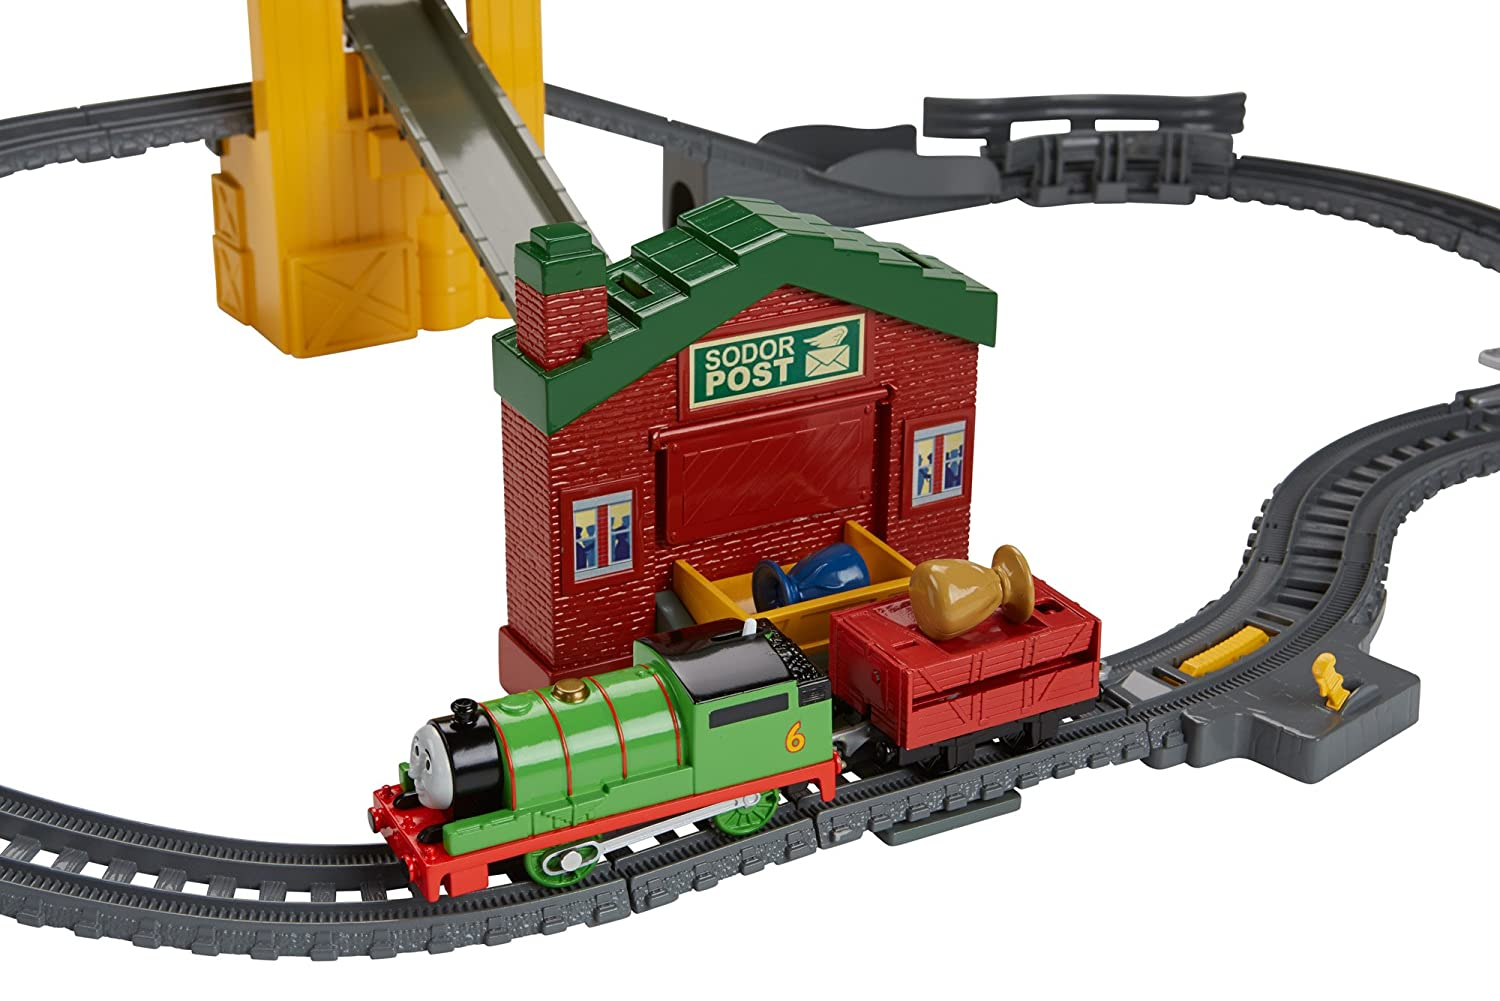 Fisher price thomas amp friends trackmaster treasure chase set new - Fisher Price Thomas The Train Track Master Sort And Switch Delivery Set Fisher Price Amazon Ca Toys Games